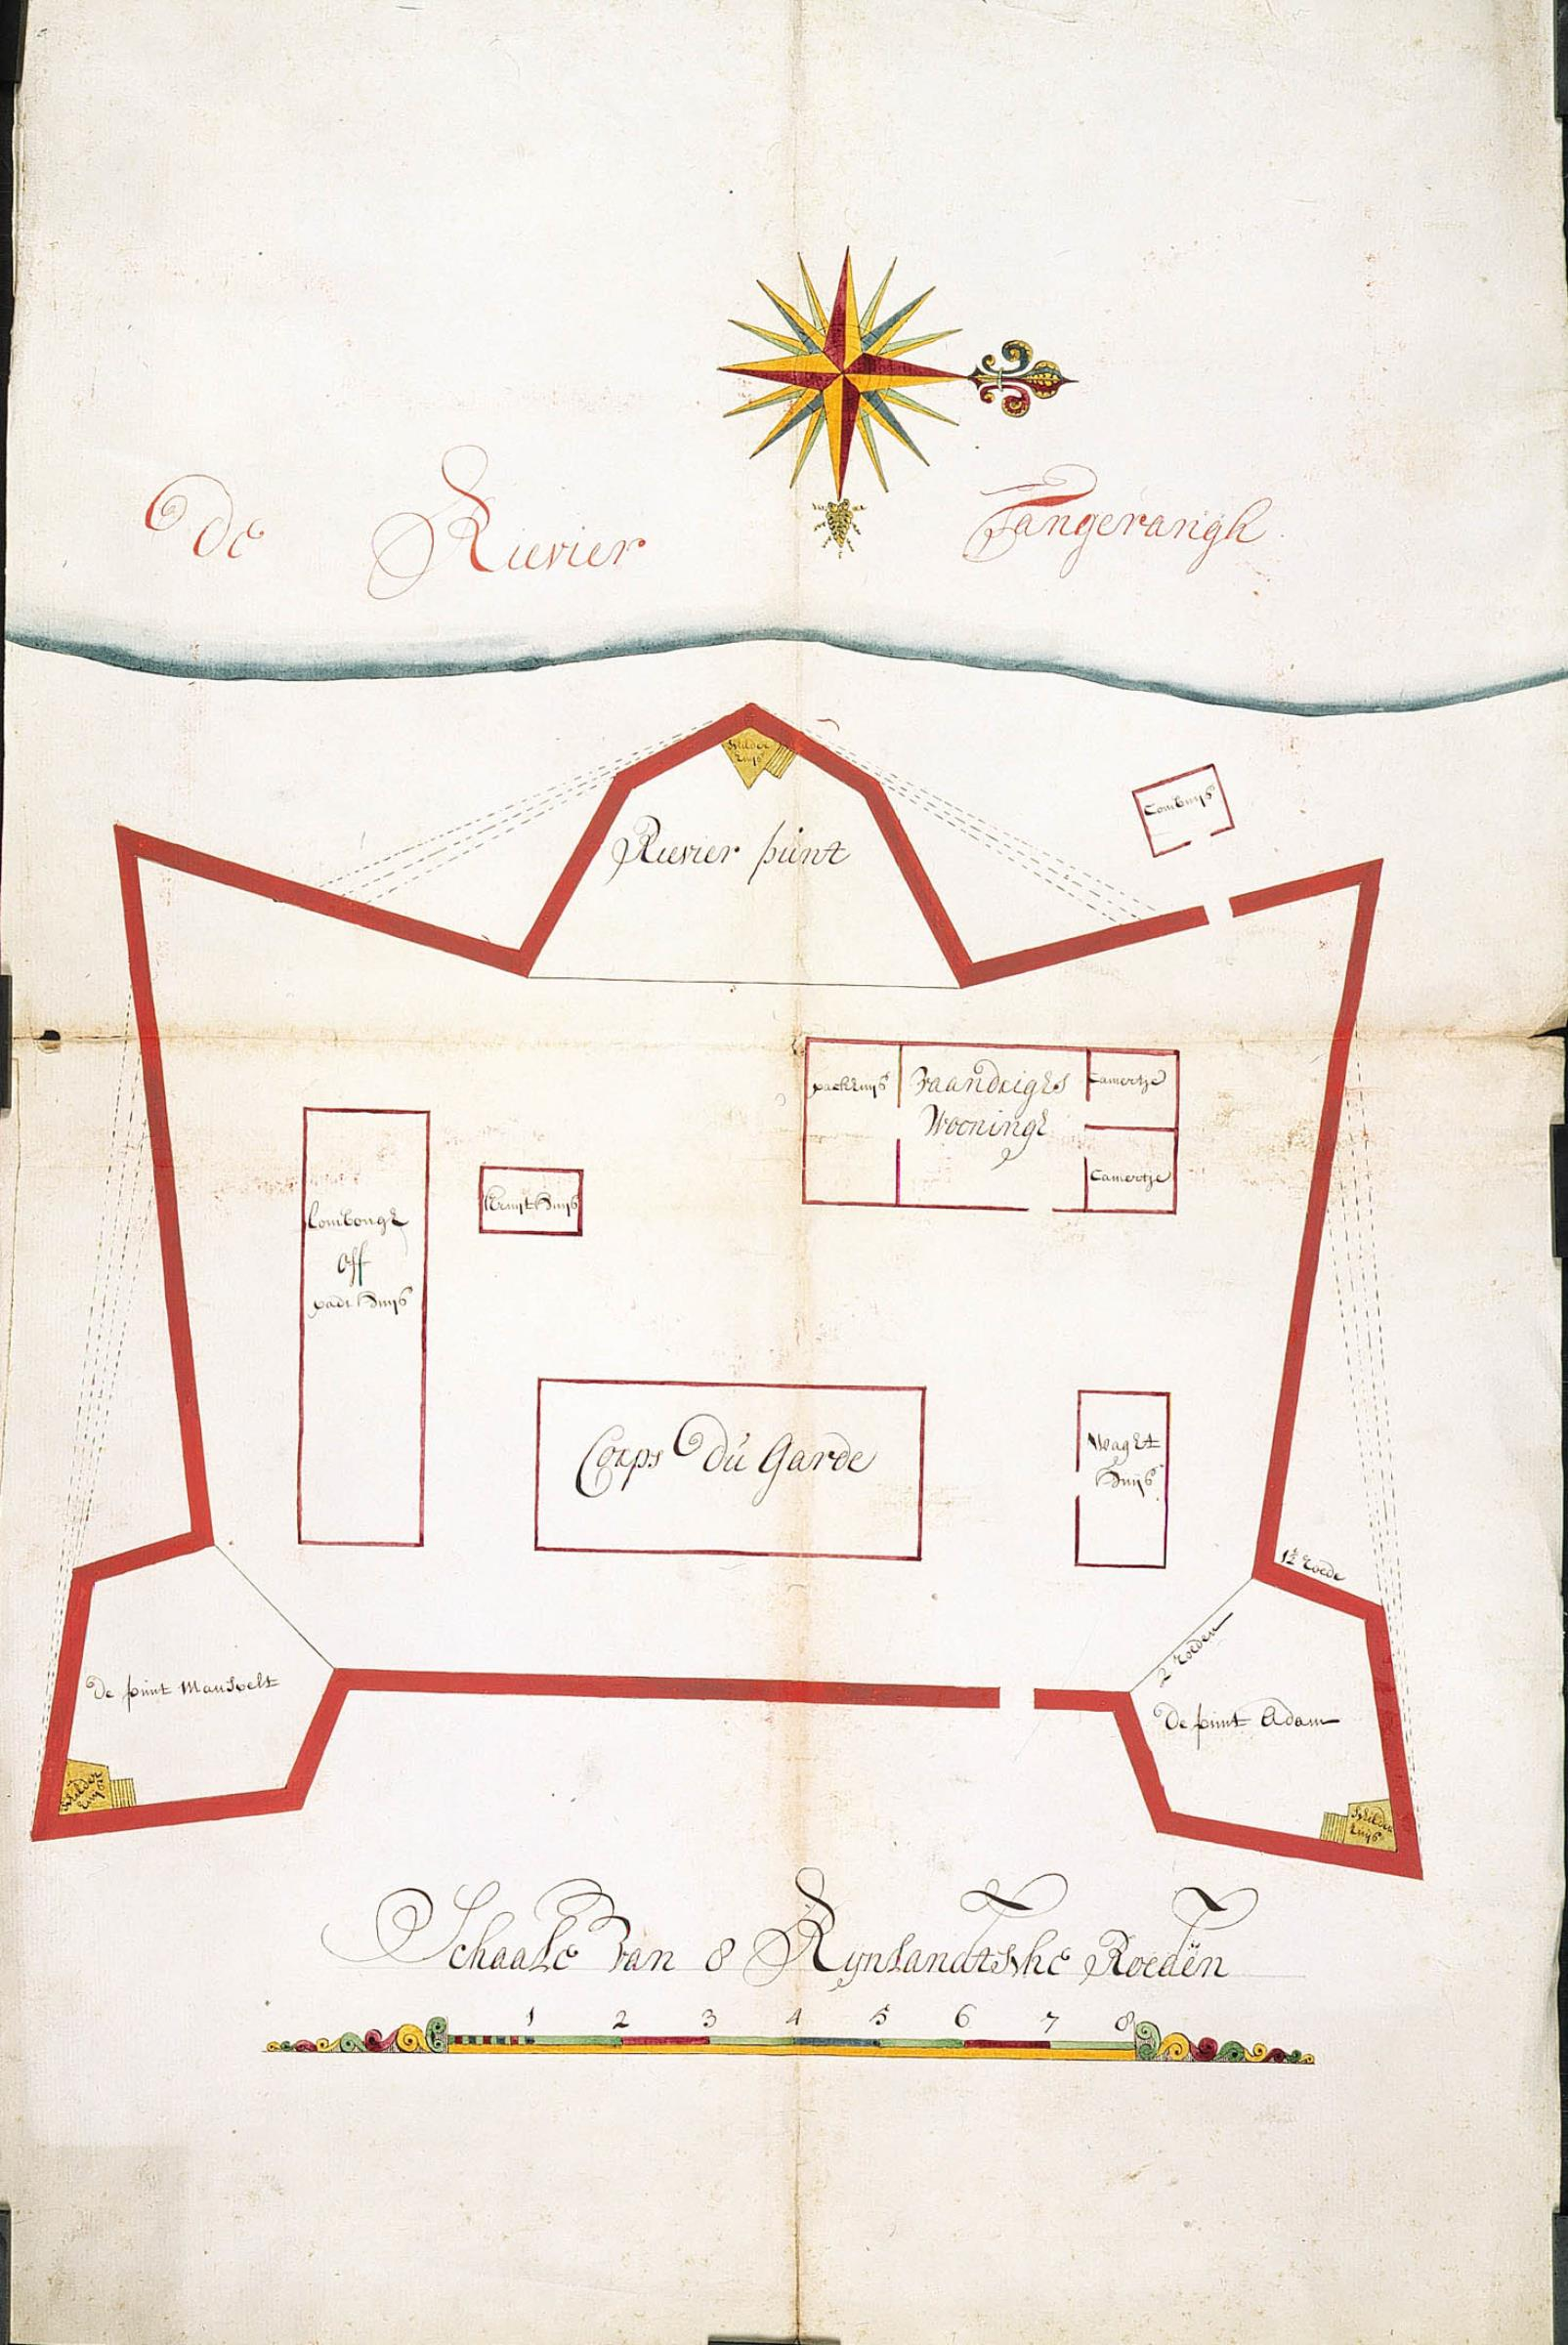 FileAMH4578NA Map of the fort at Tangerangjpg Wikimedia Commons